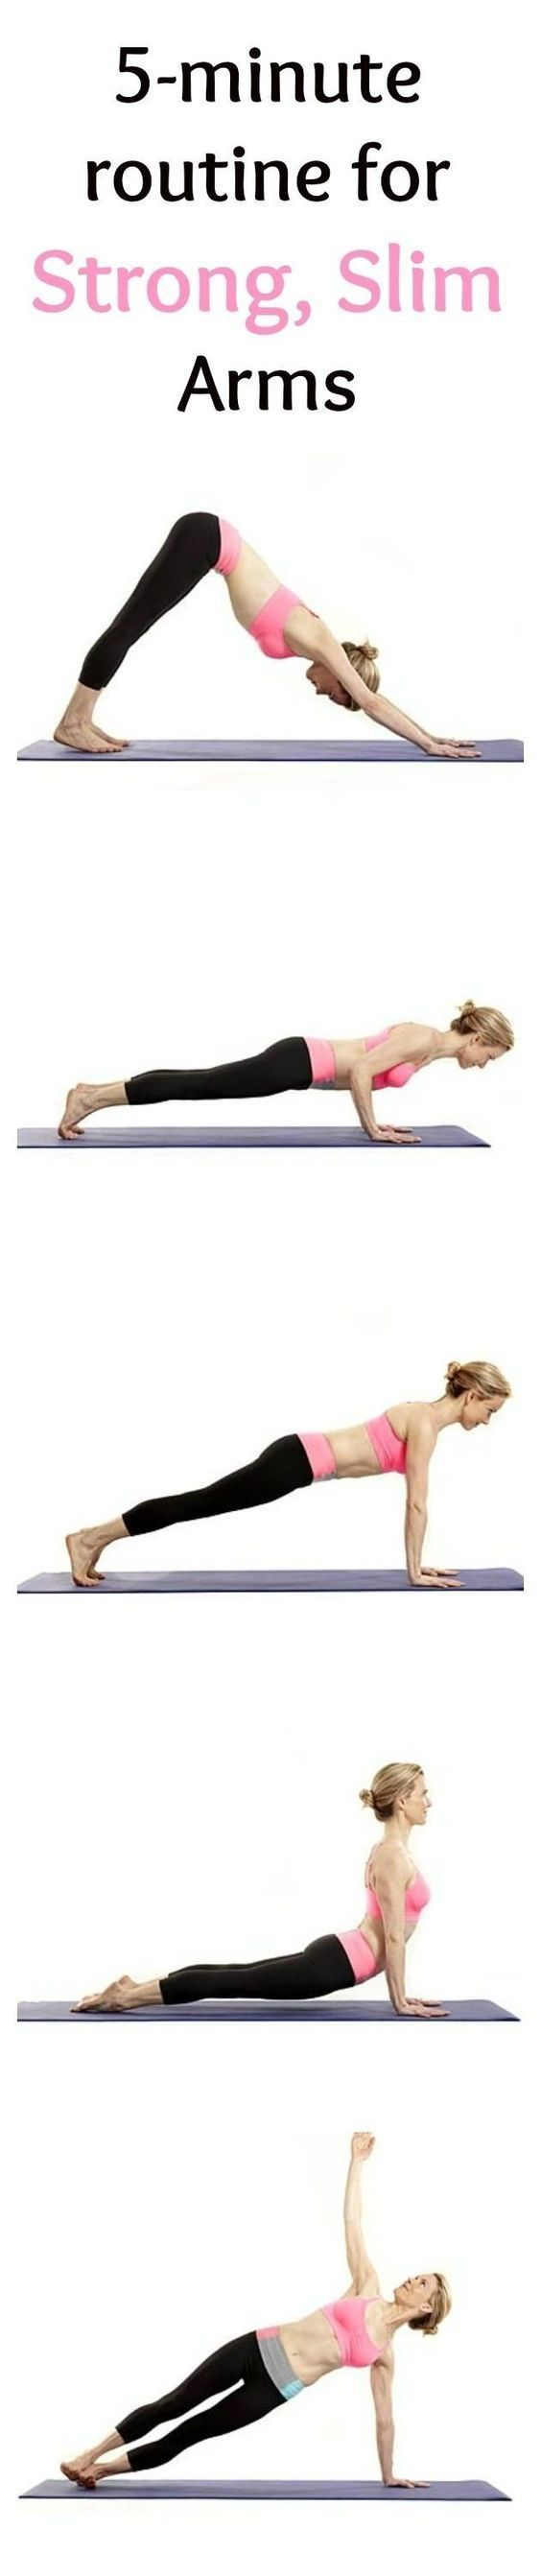 7 Yoga Poses for Weight Loss (Which Are Beginner-Friendly!)